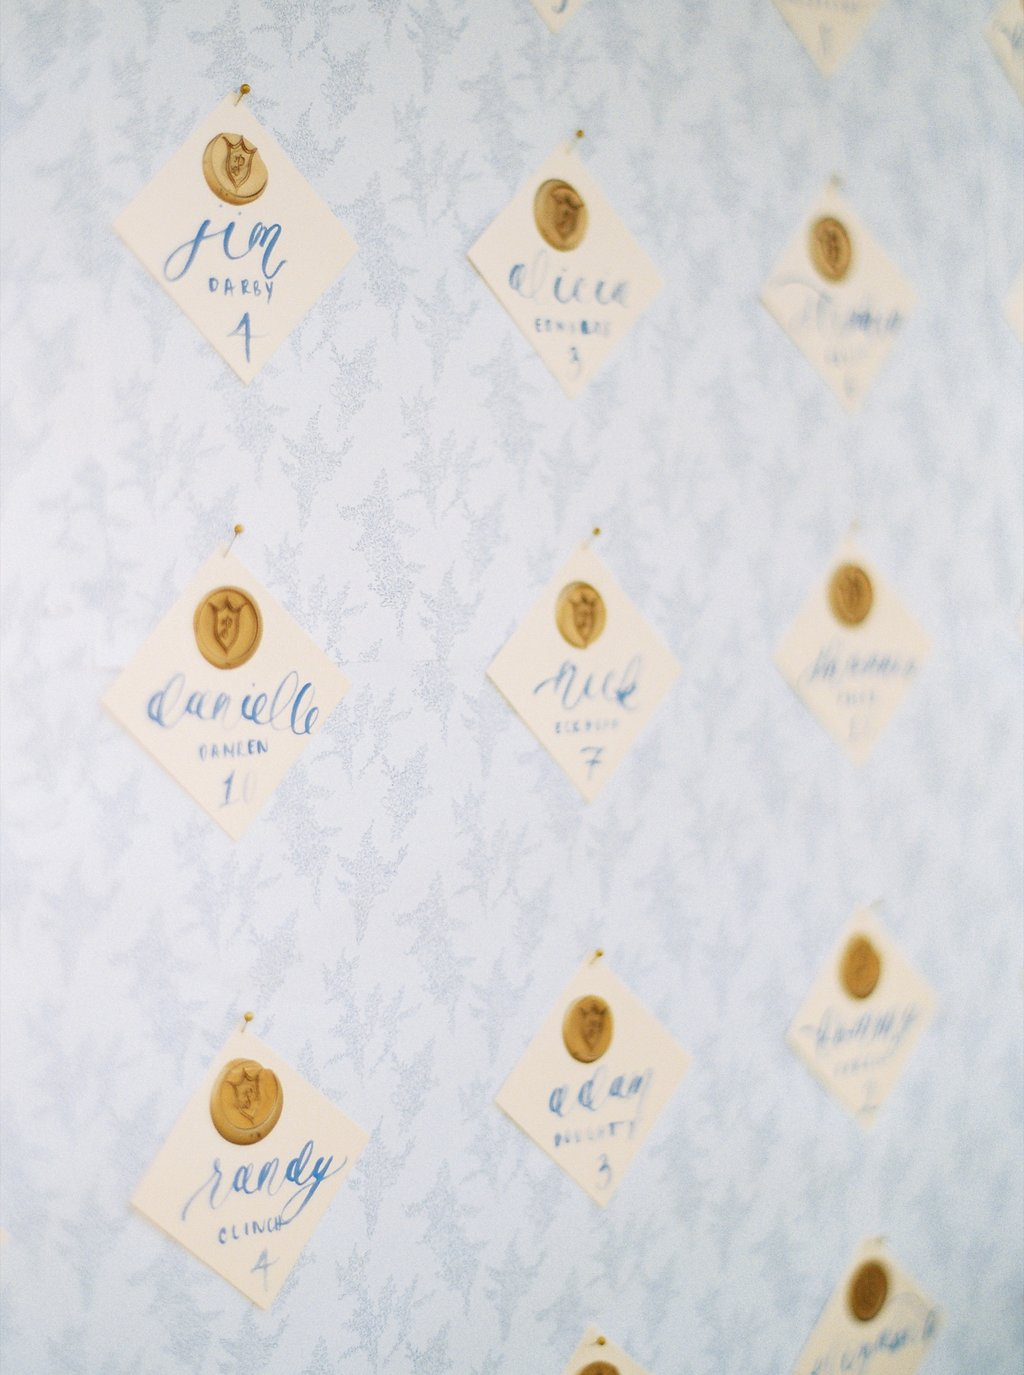 Custom Calligraphy Escort Cards with Gold Wax Seal Wedding Crest | Blush and Navy Wedding with Fuchsia, French Blue and Gold Accents | Simply Jessica Marie's Southern Wedding at Gettysvue Golf Course and Country Club in Knoxville Tennessee | Photo by Perry Vaile Photography